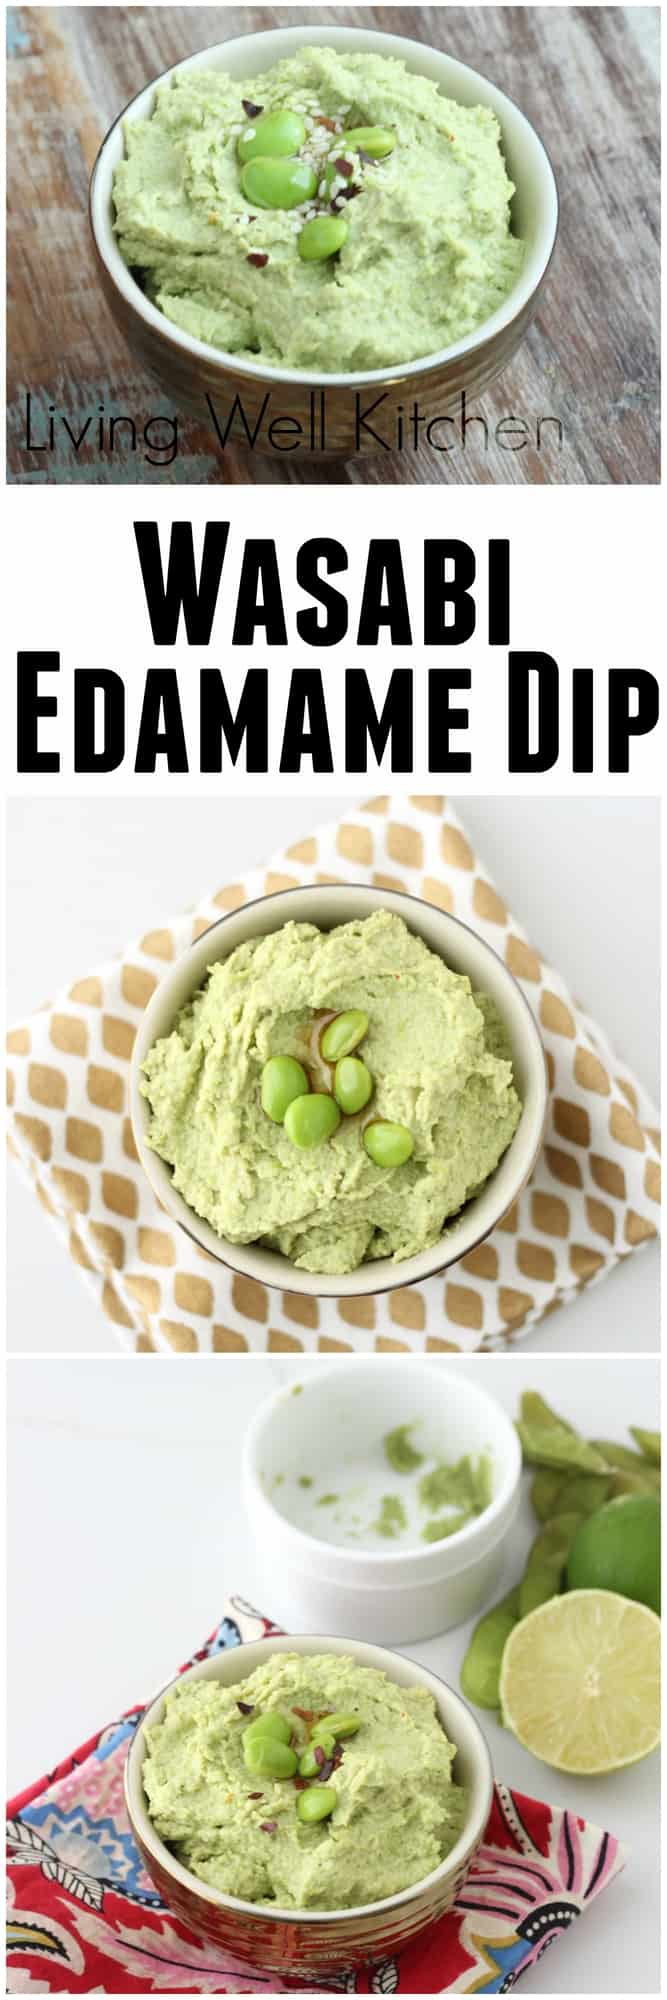 A flavor explosion in a bowl, this spicy Wasabi Edamame Dip from Living Well Kitchen @memeinge is tasty and high in protein